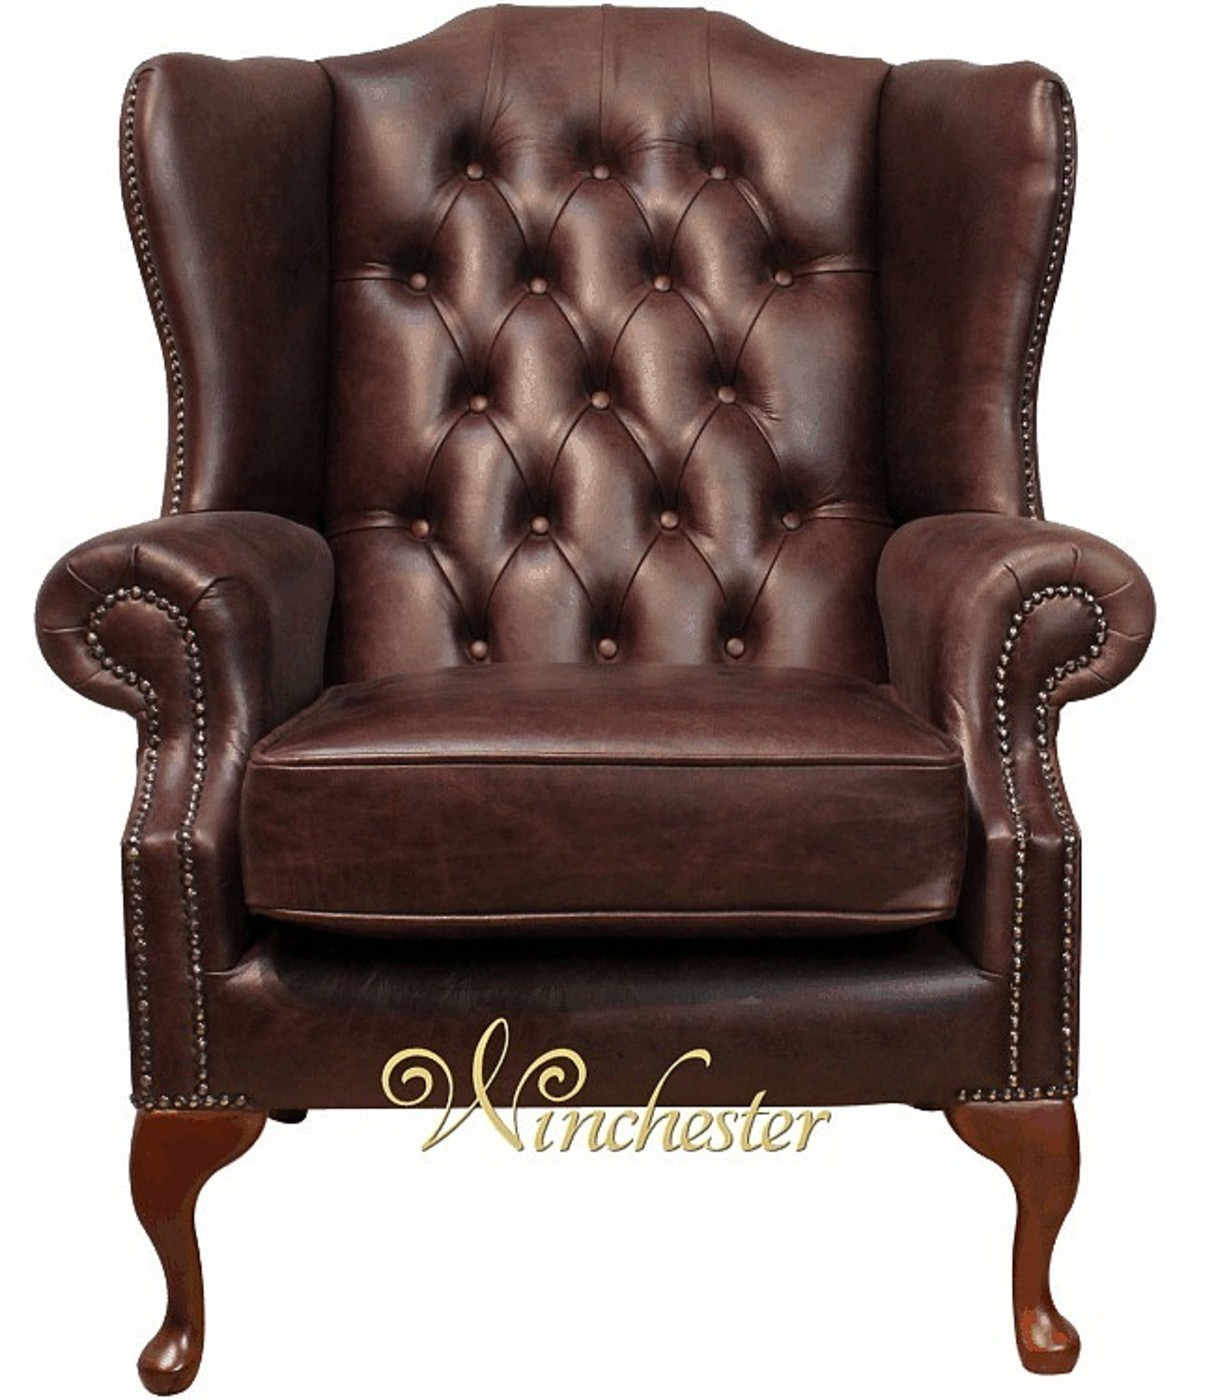 Chesterfield Mallory Wing Chair Hand Dyed Leather Wc